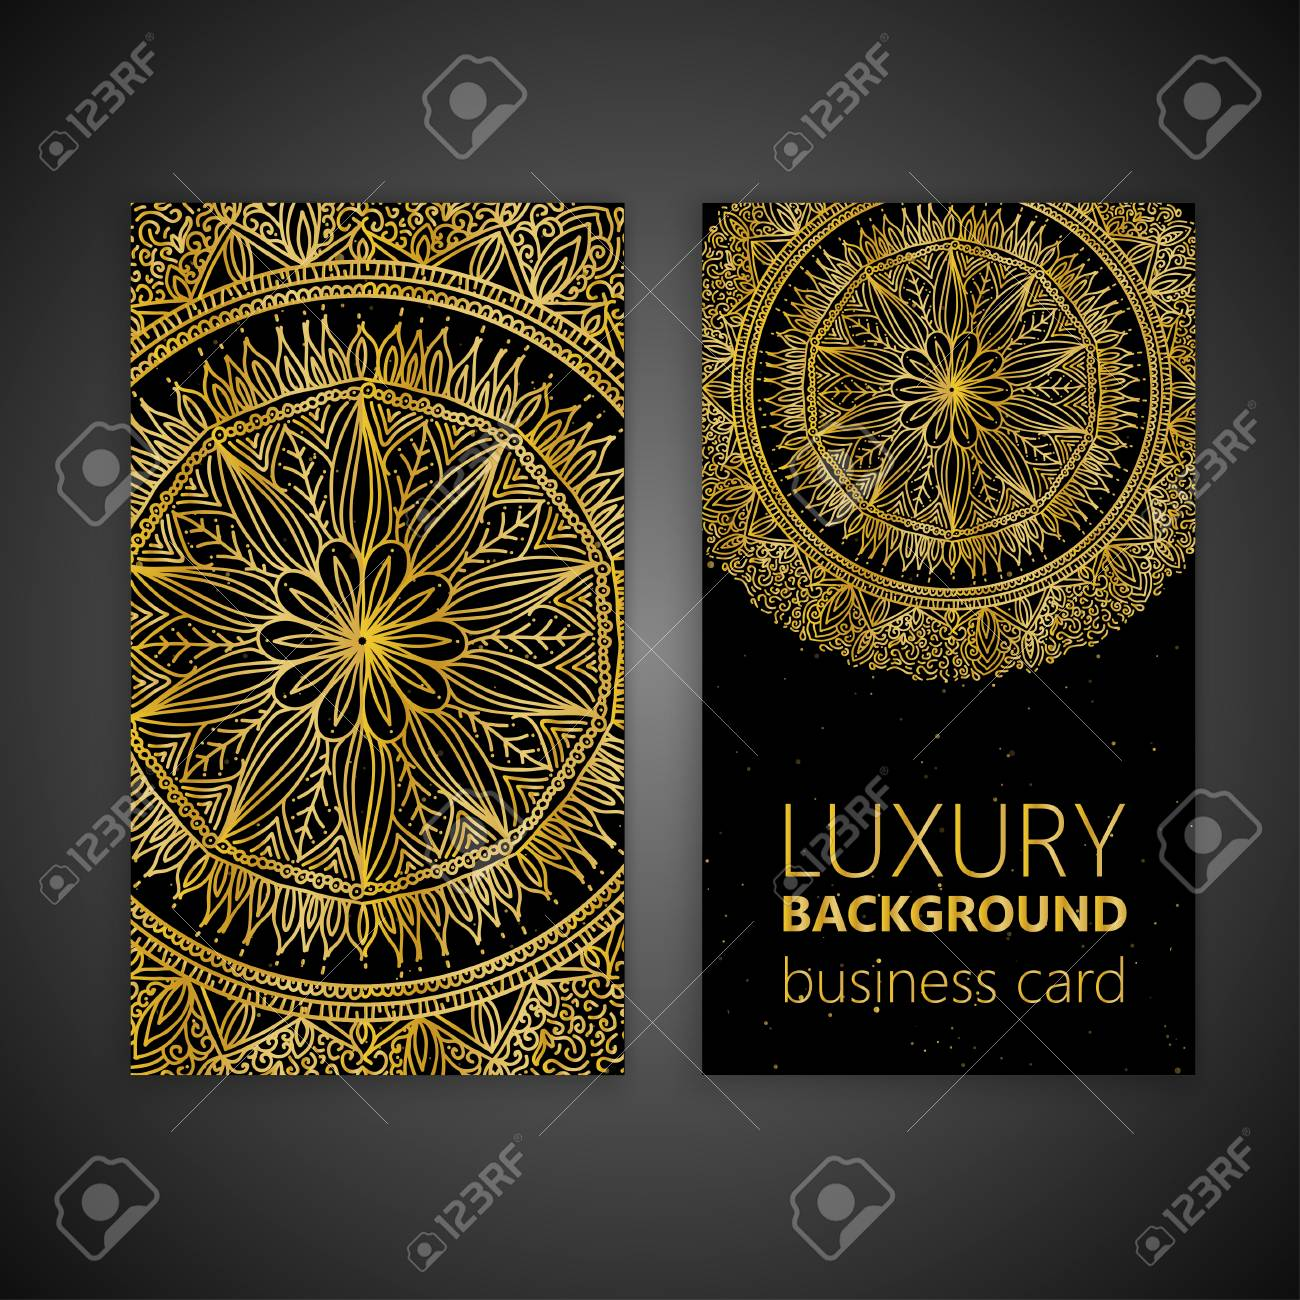 Business card set golden mandala decorative elements islam business card set golden mandala decorative elements islam arabic indian moroccan reheart Image collections